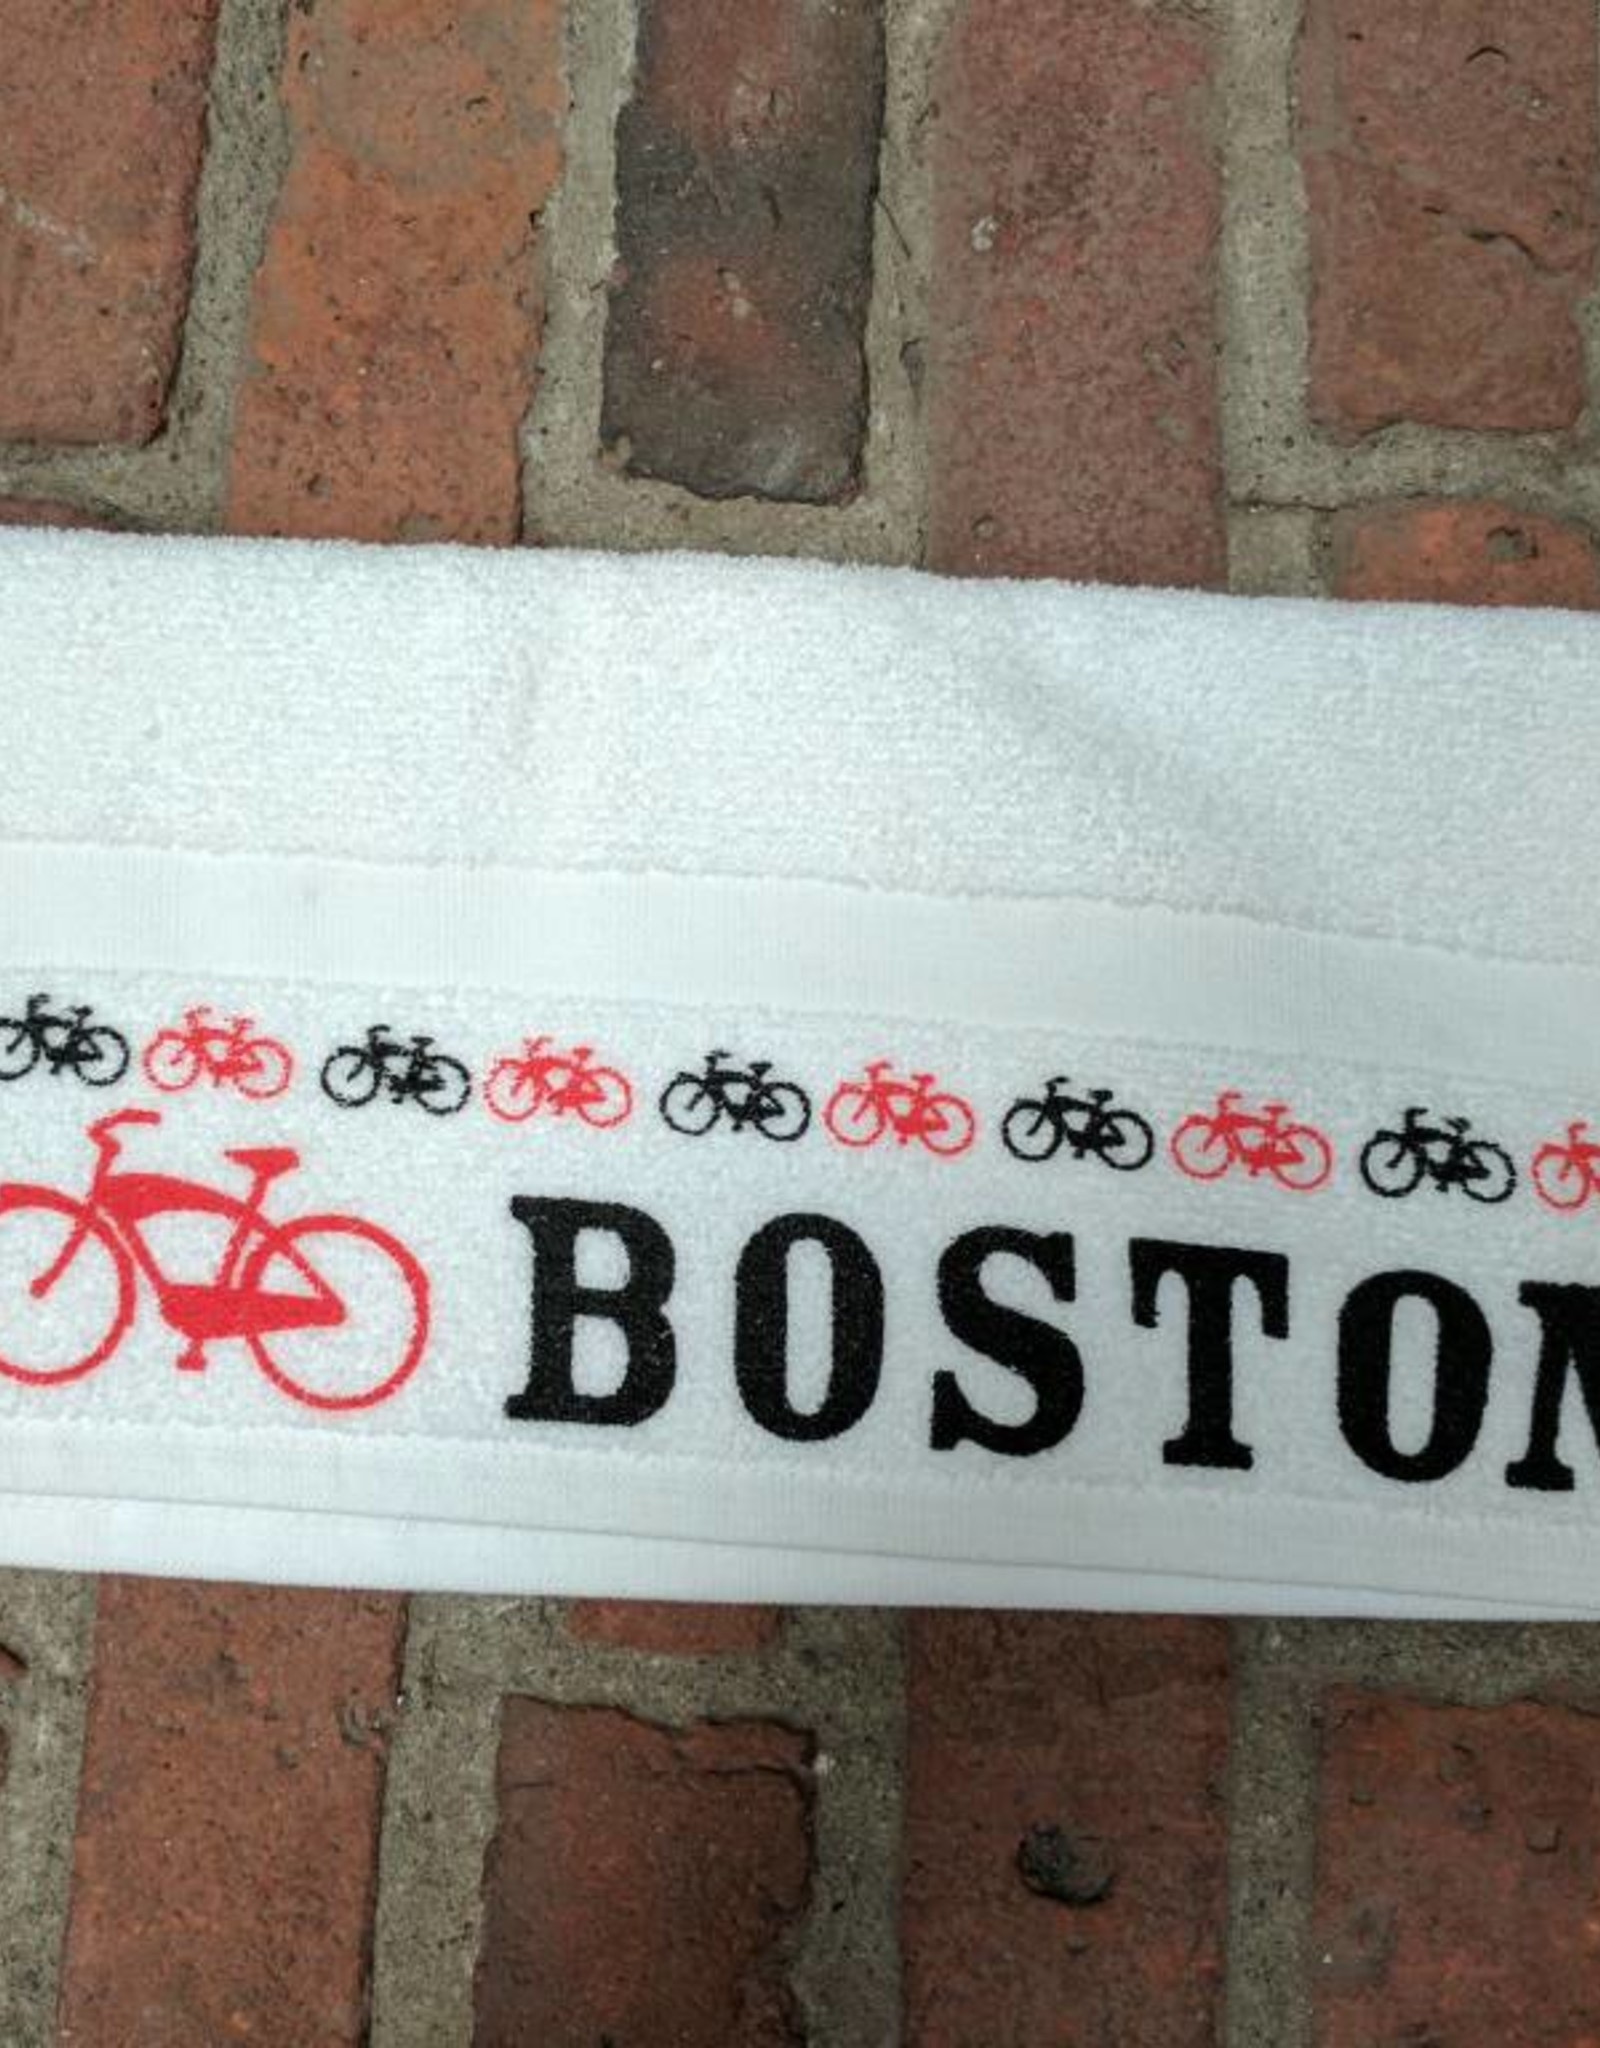 Towel - I bike Boston - UA spin towel